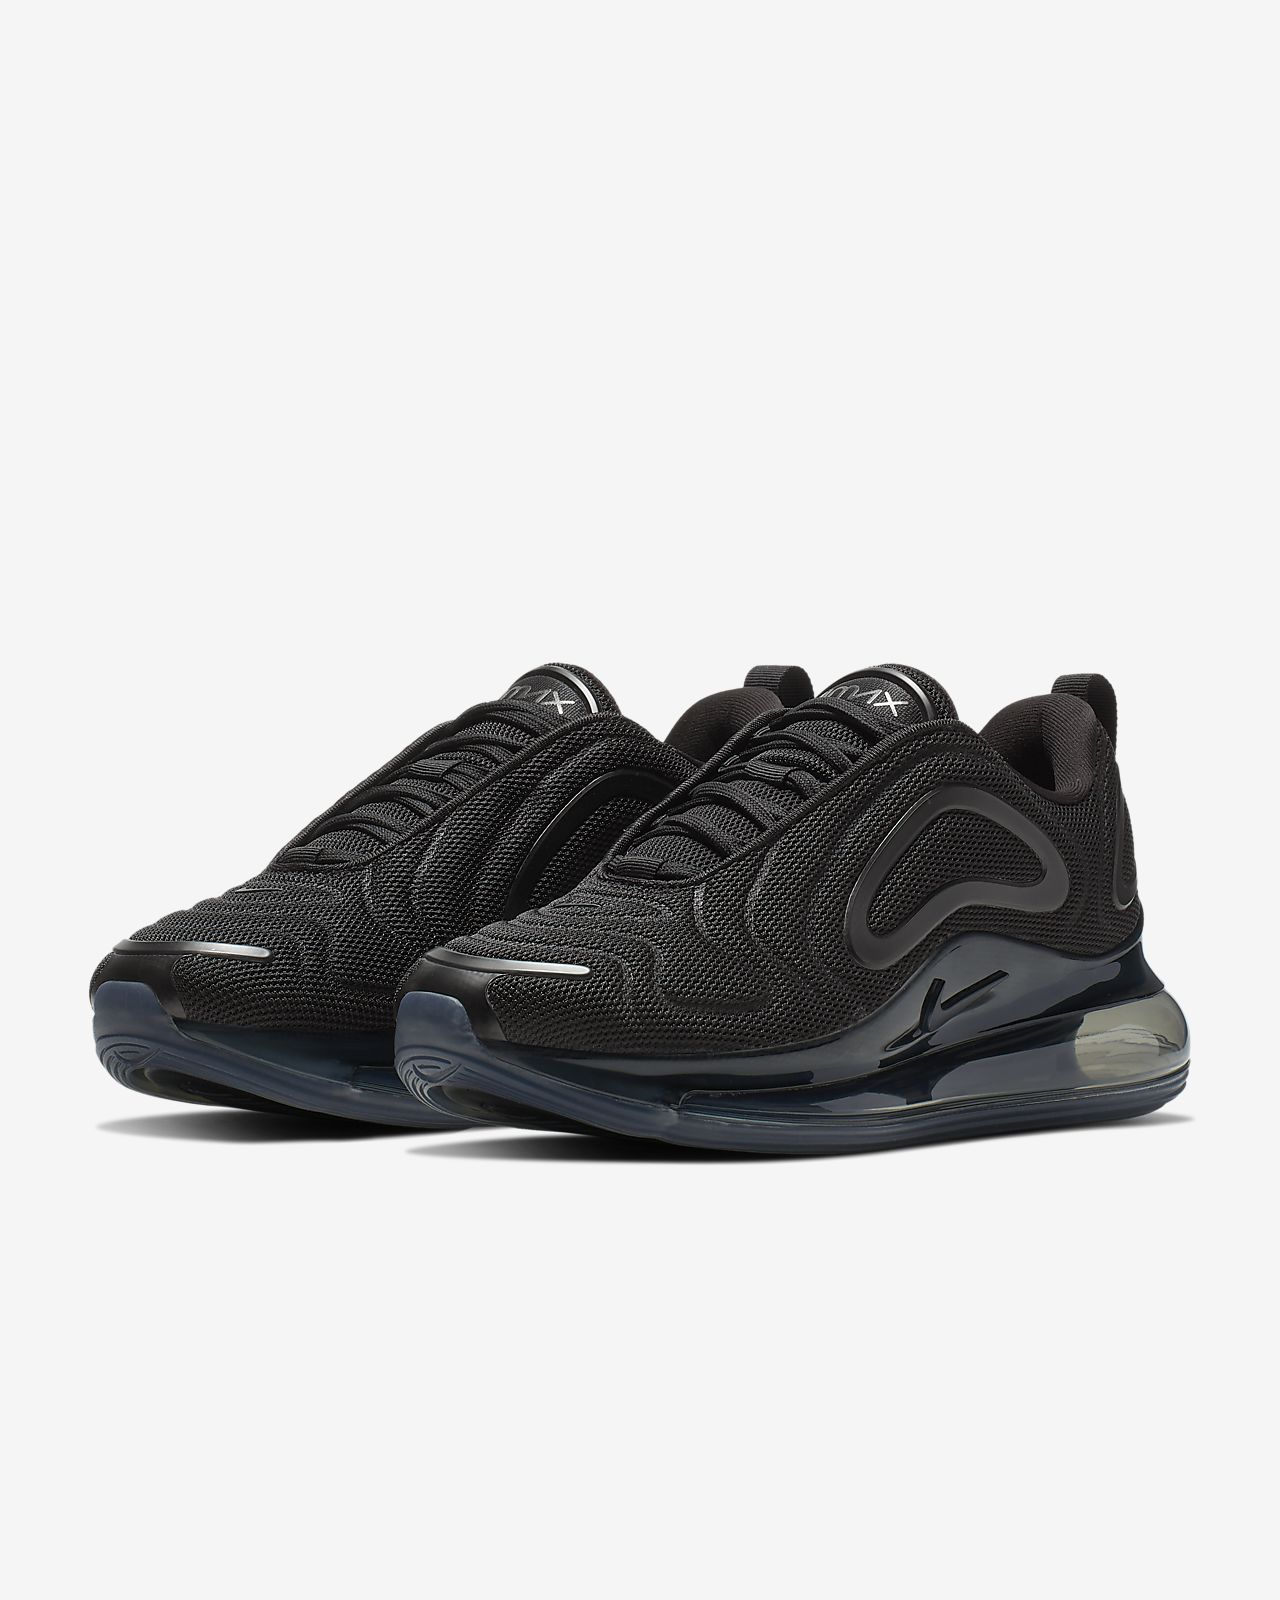 los angeles sale online hot product Chaussure Nike Air Max 720 pour Femme